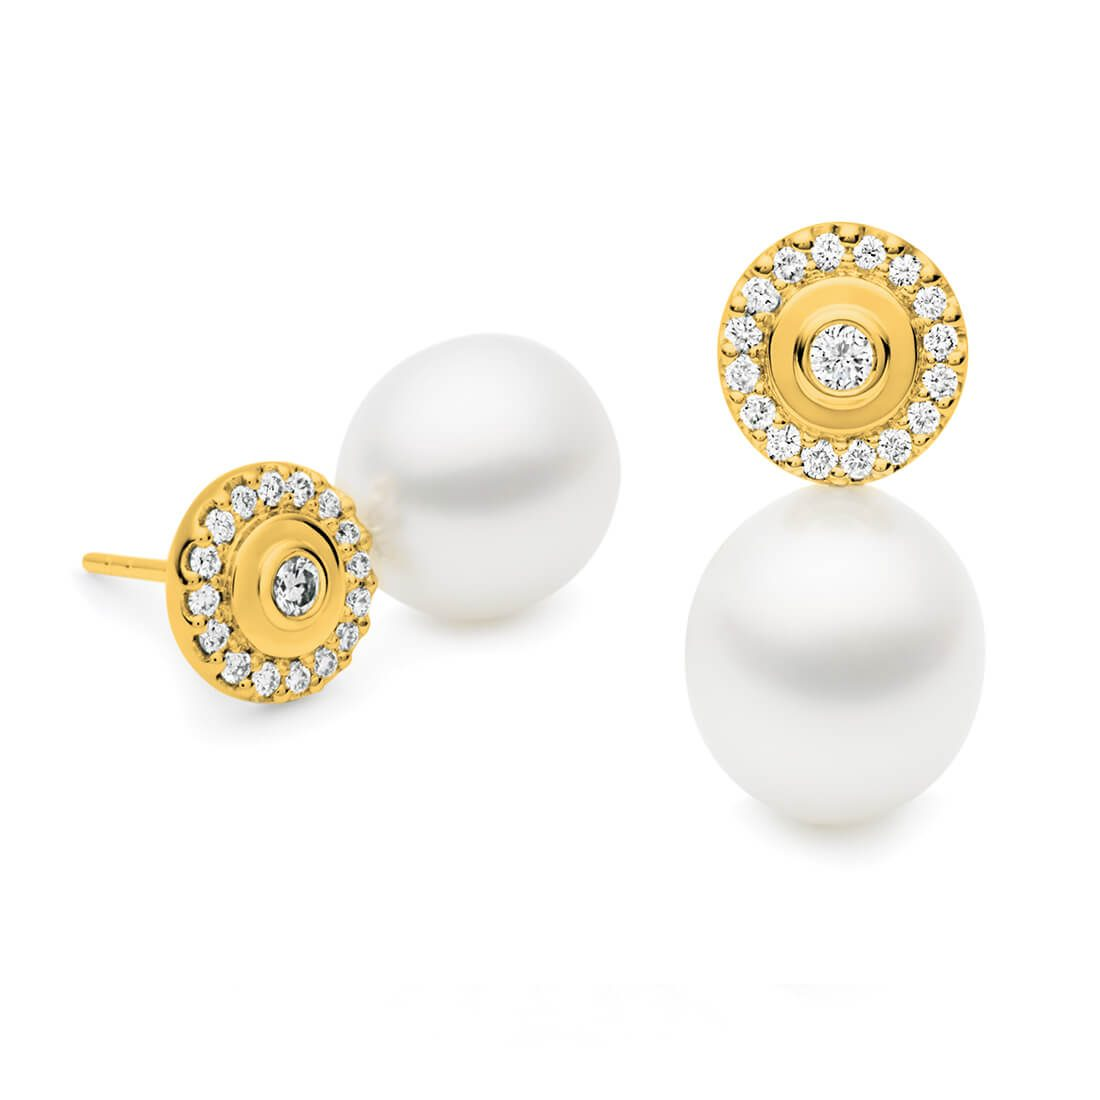 Kailis - Lilypond Pearl Earrings, Yellow Gold